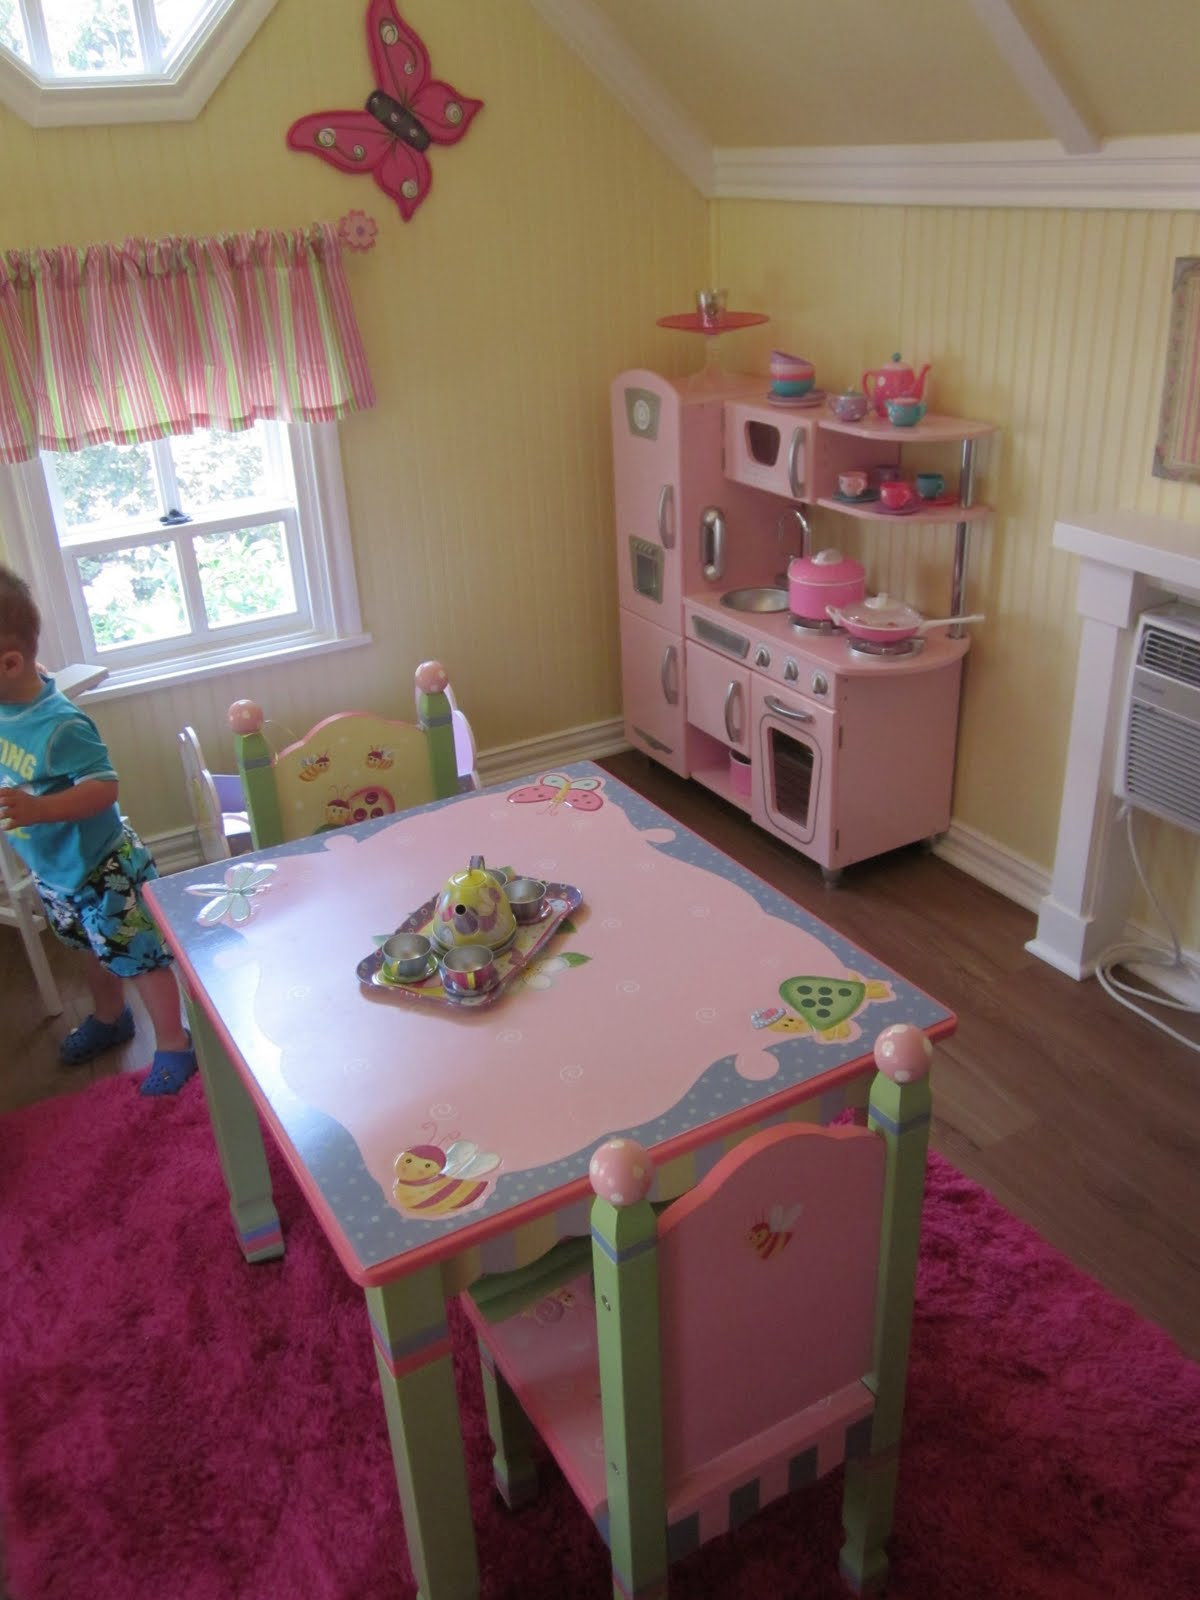 Kensington cottage mix and match mama for Playhouse ideas inside